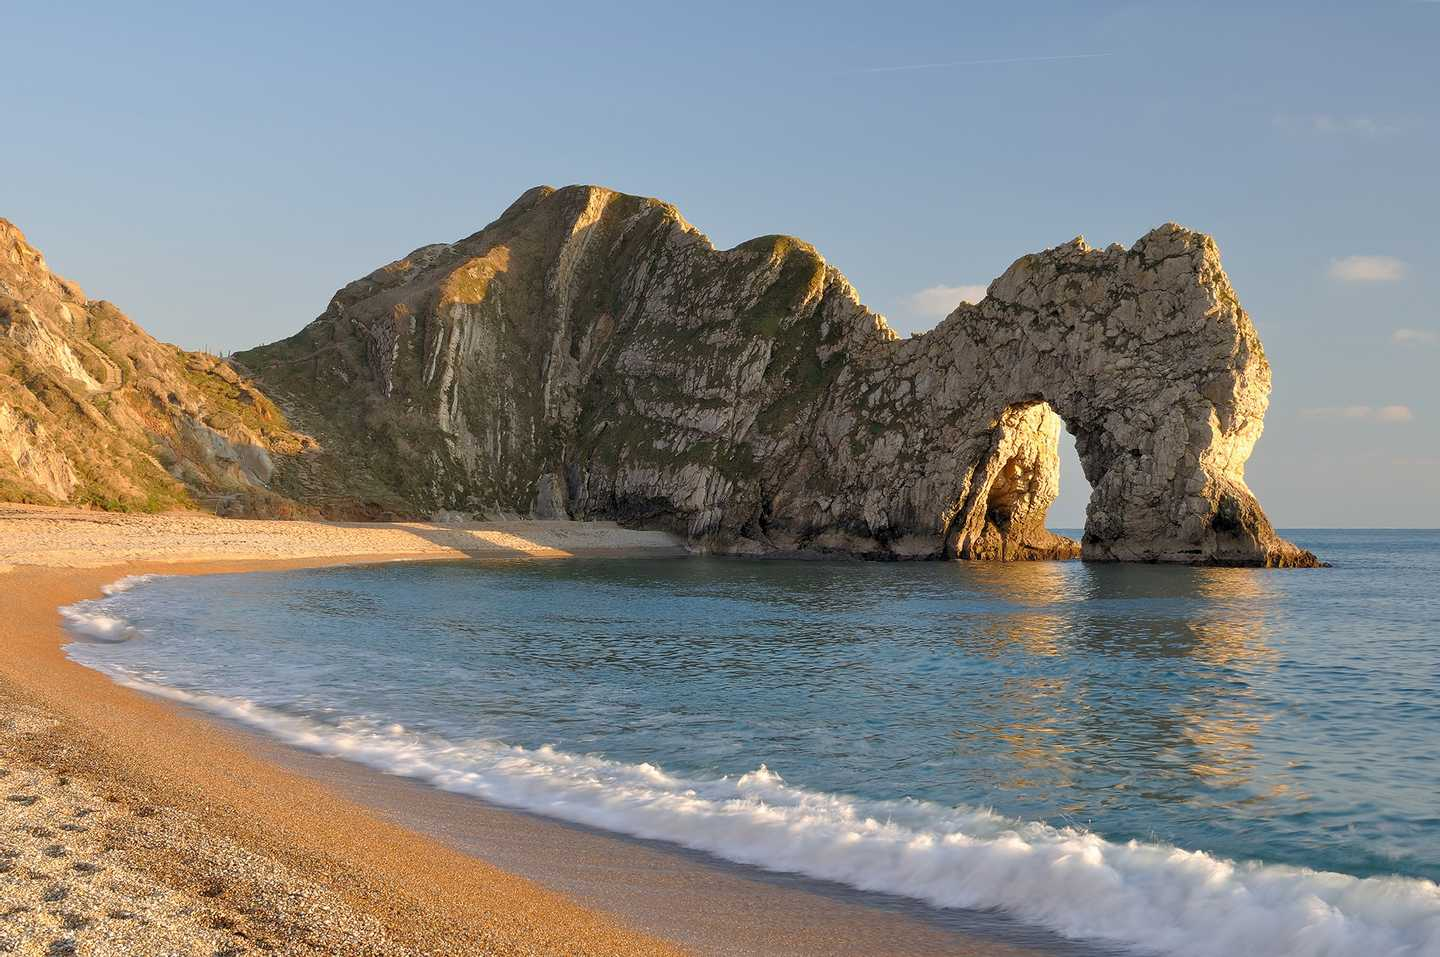 View of Durdle door